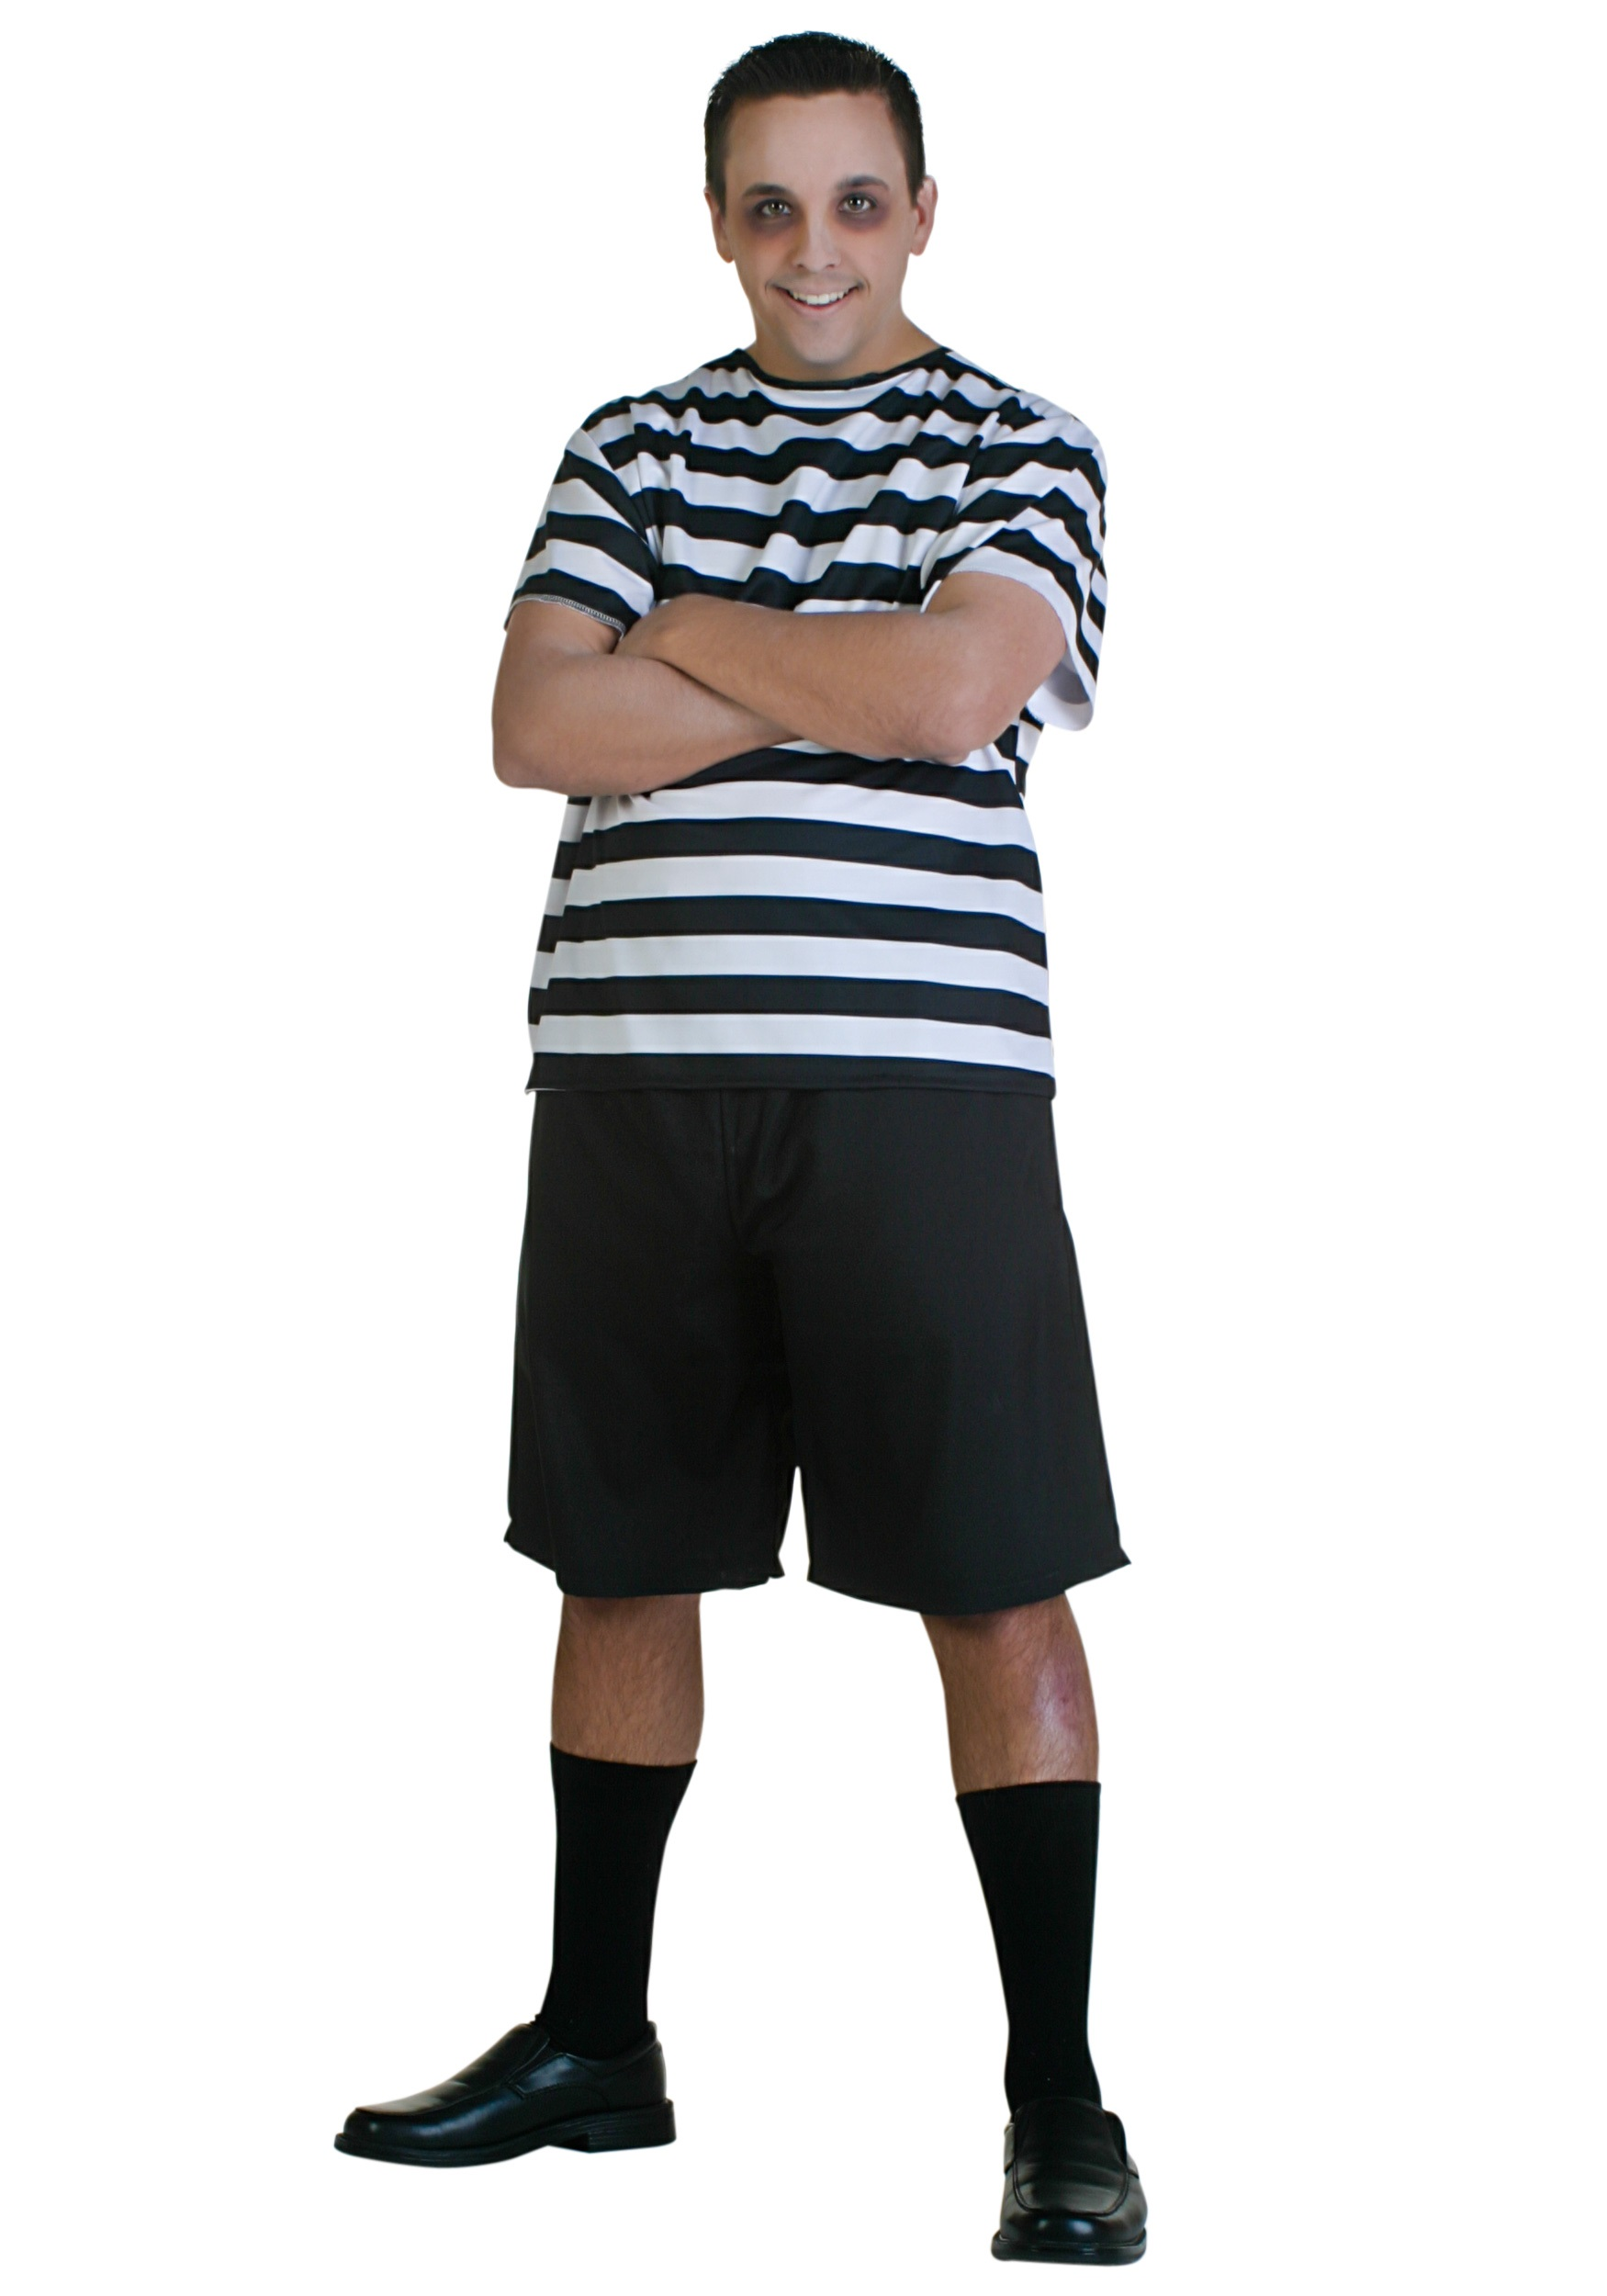 Pugsley Addams Costume - Addams Family Costumes